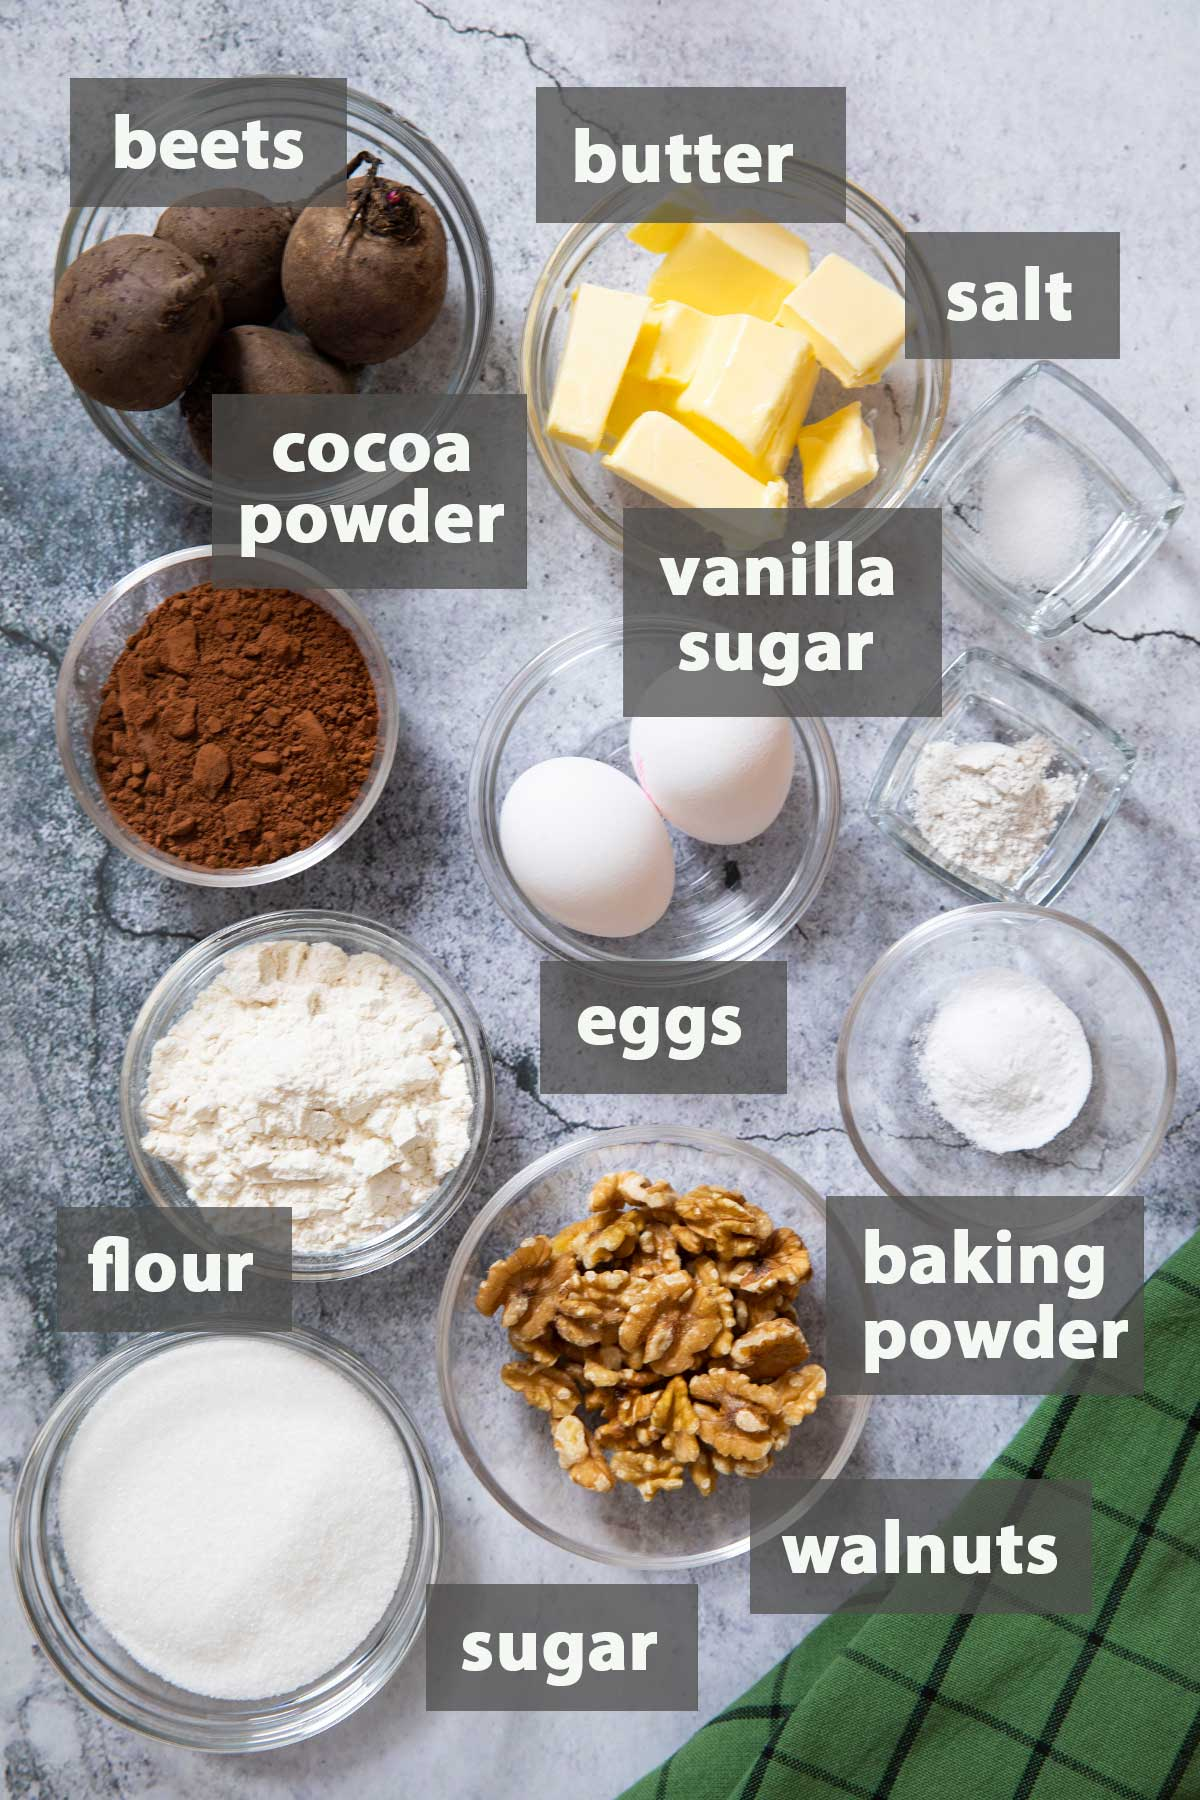 An image showing the ingredients that you need to prepare Chocolate and Beetroot Brownies